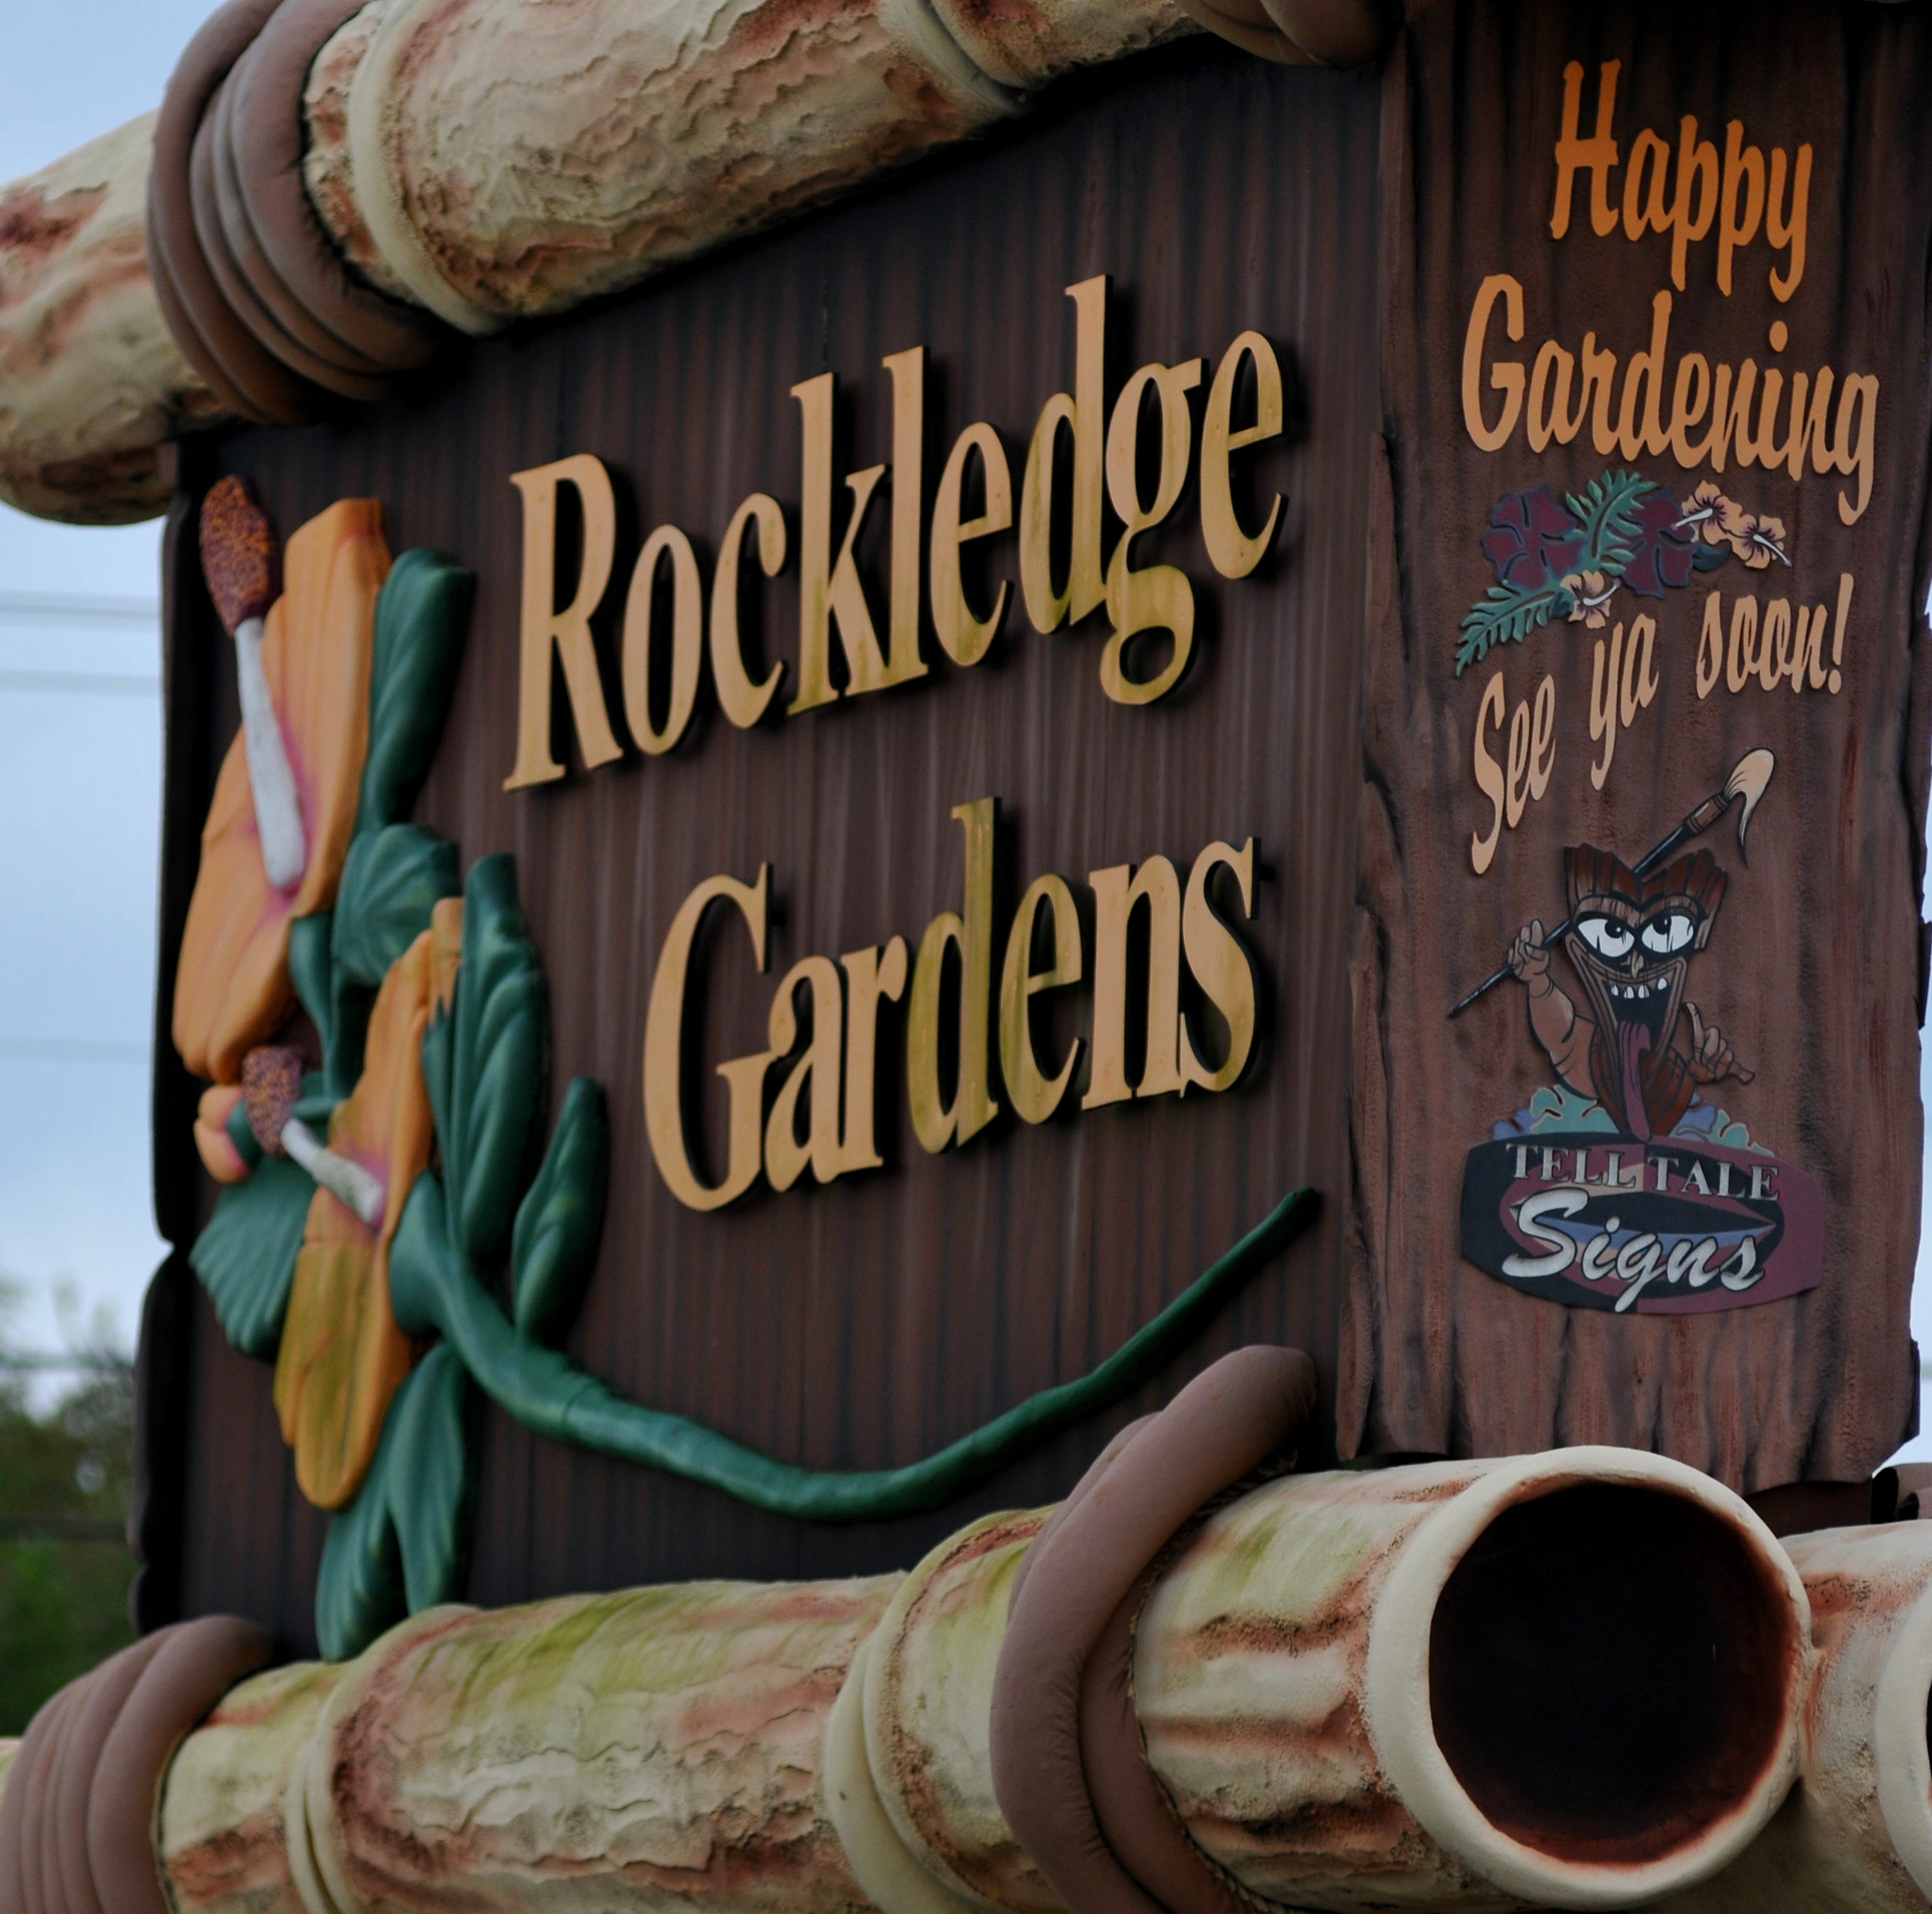 Food & Fun for Dec. 12-18: Holiday fun abounds with dinner at Rockledge Gardens,  concerts